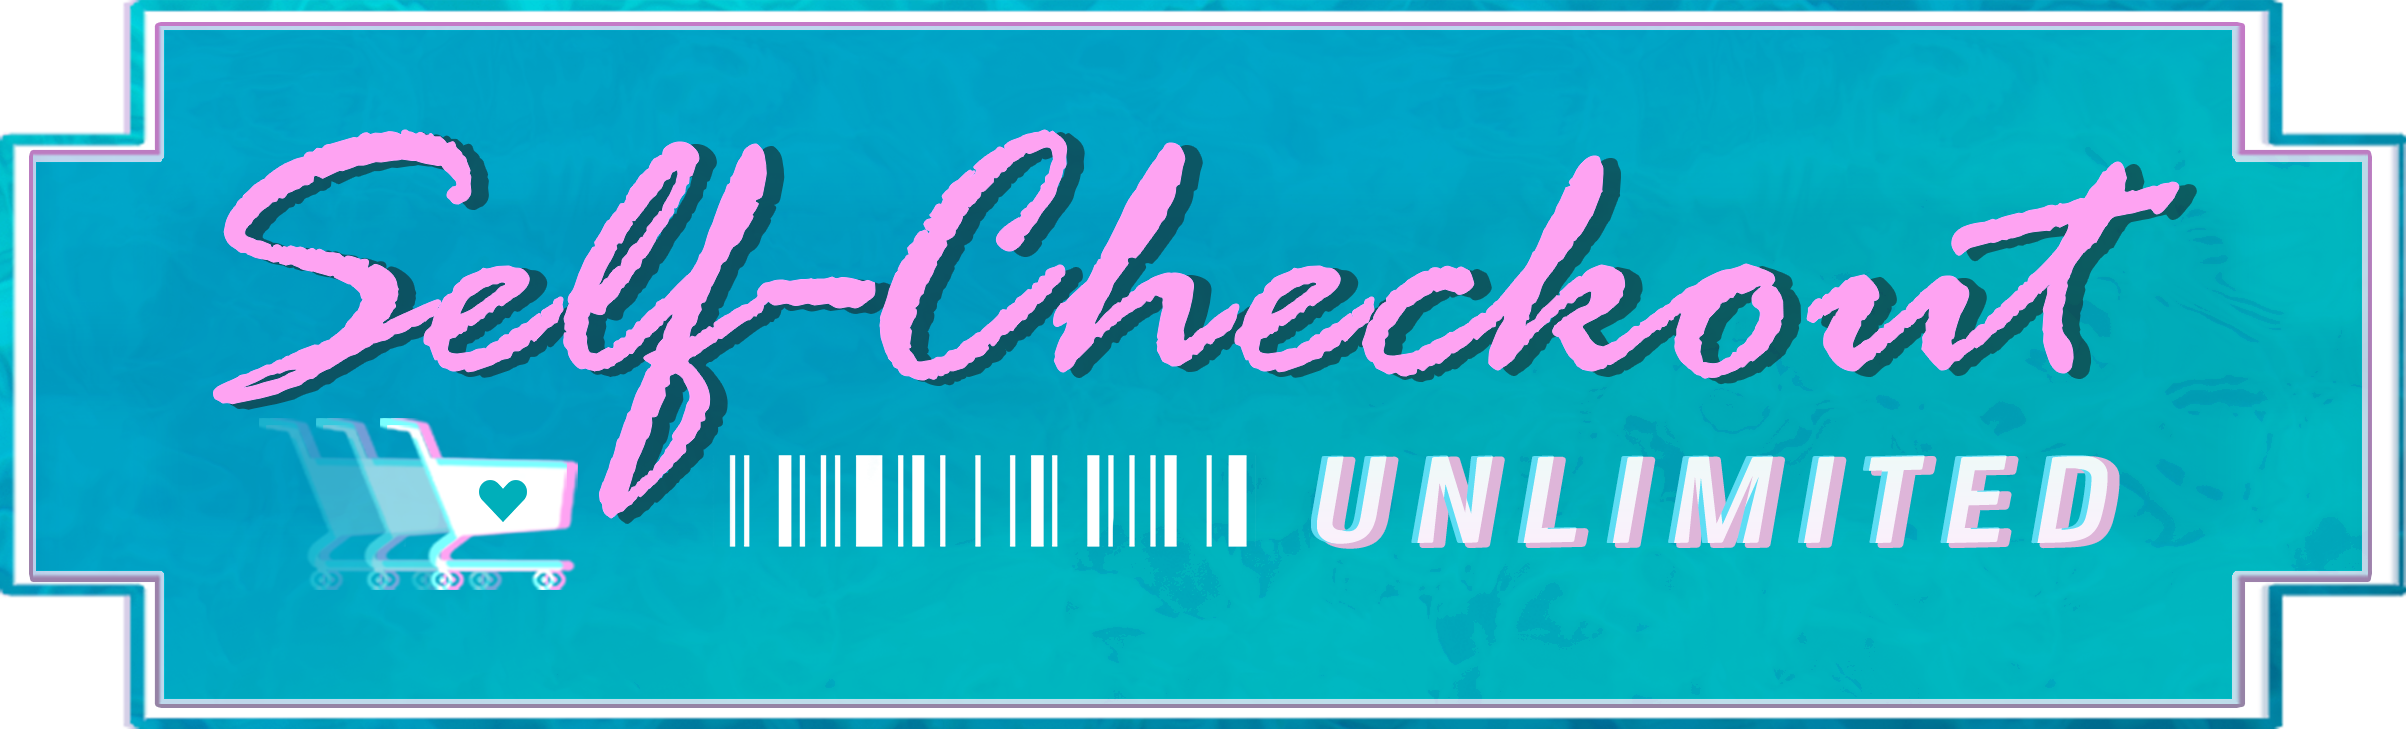 Self-Checkout Unlimited logo